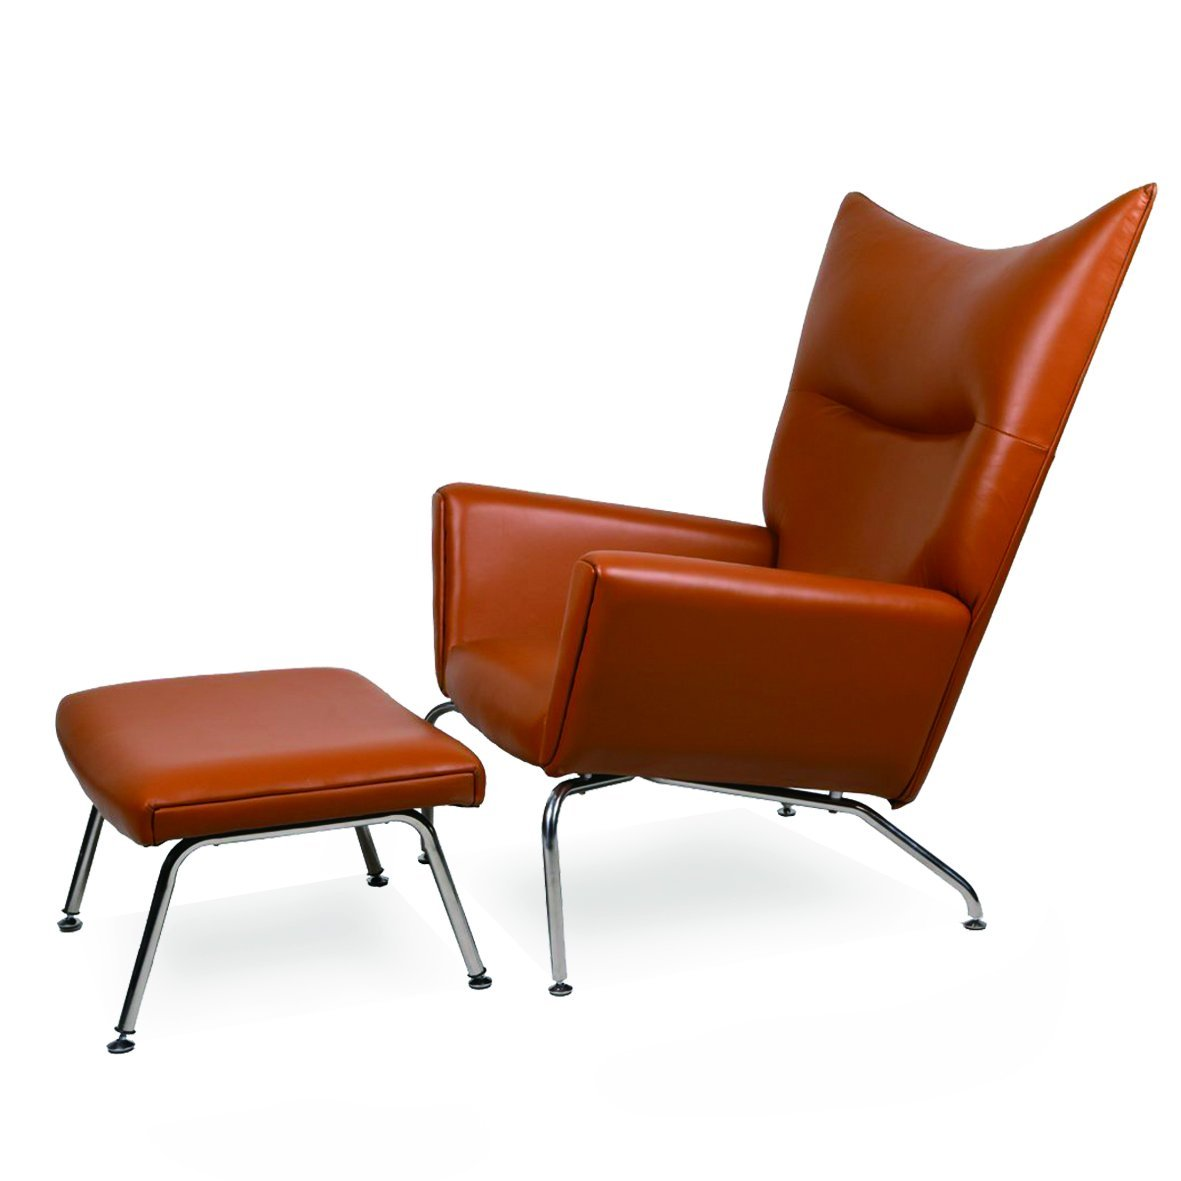 cheap wing chair wegner find wing chair wegner deals on line at